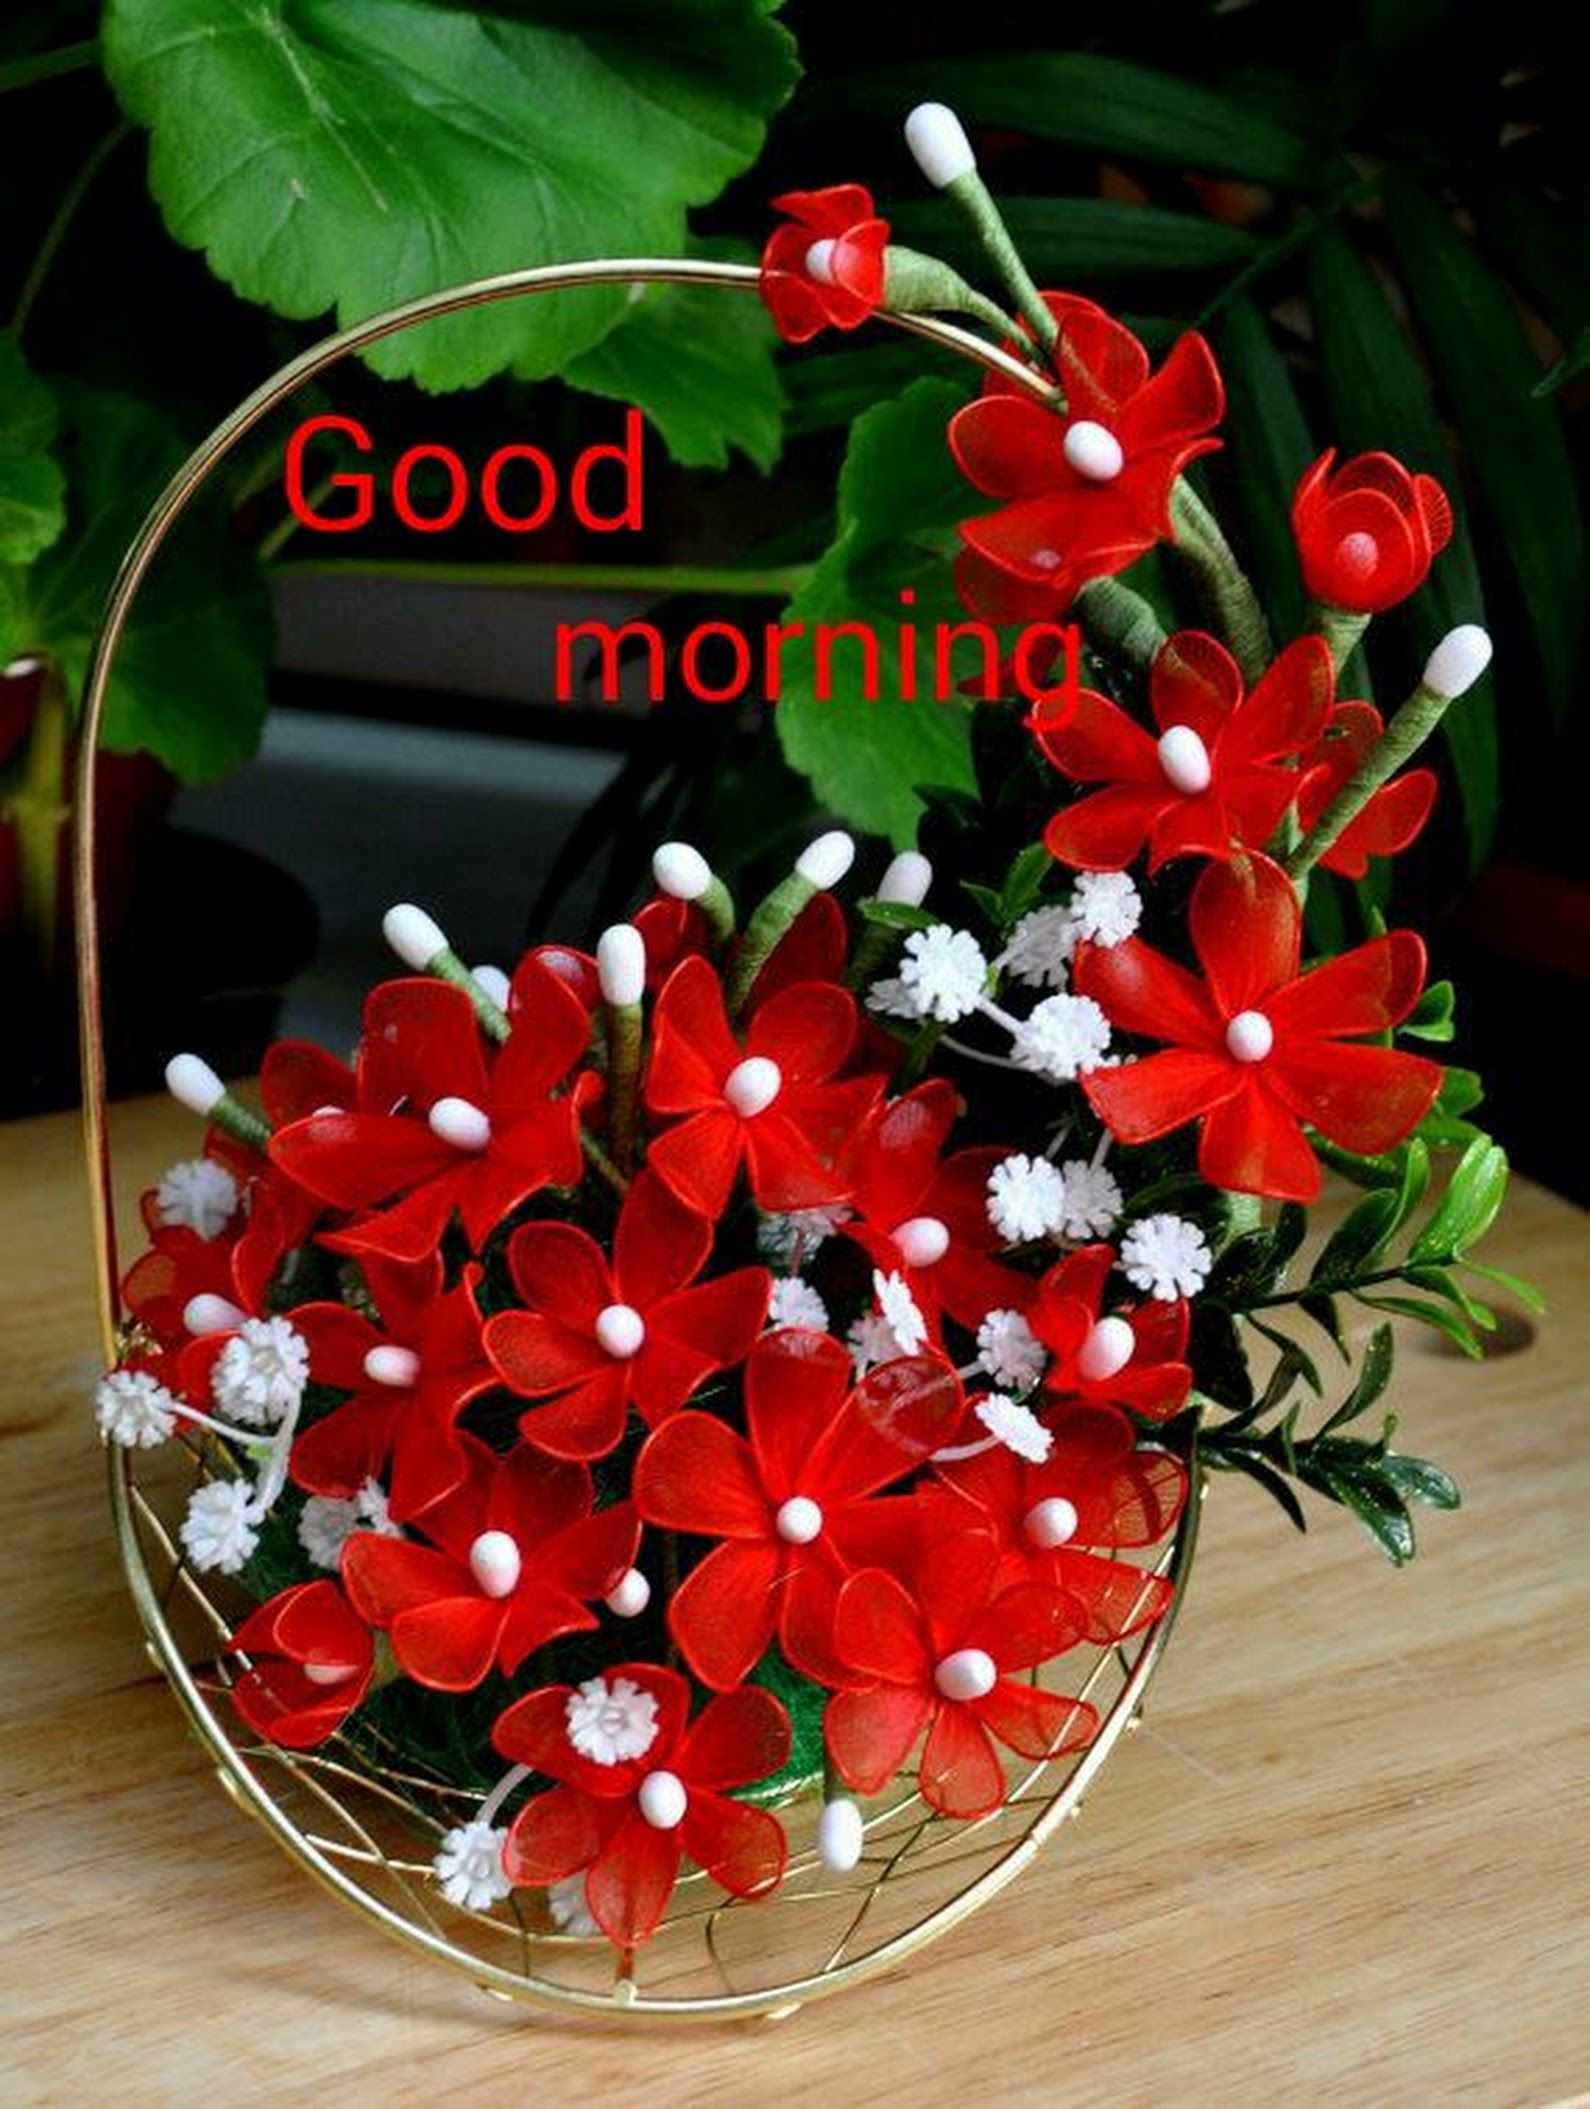 Good morning friends have a nice day photo — pic 1